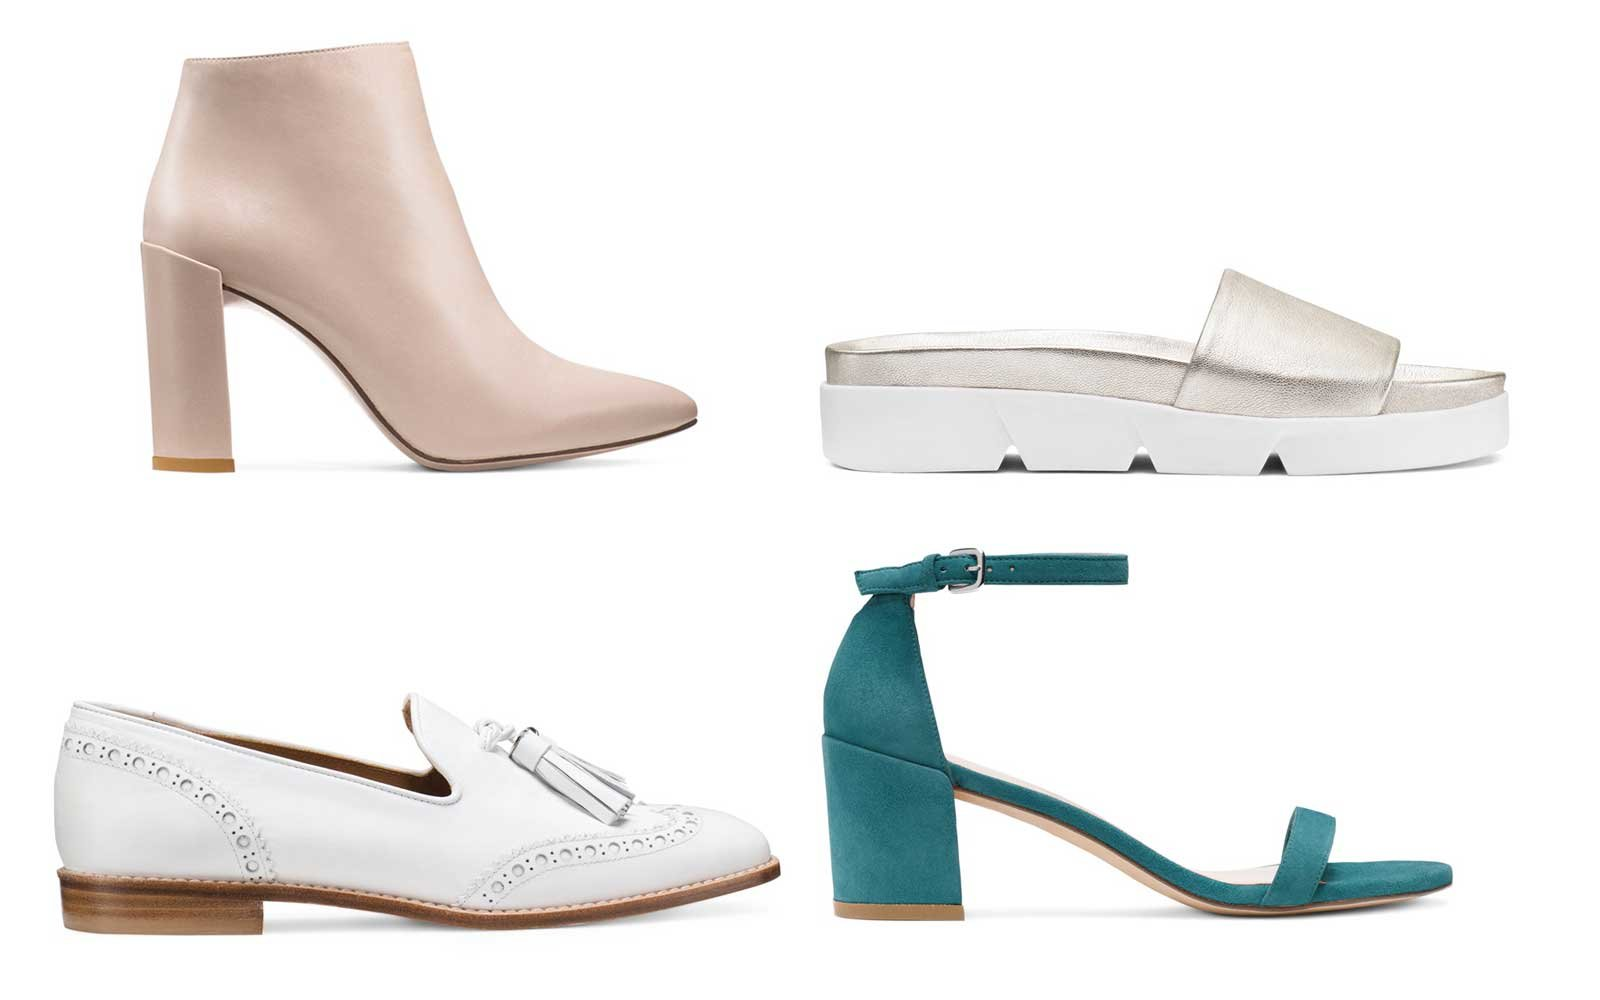 Stuart Weitzman shoes on sale